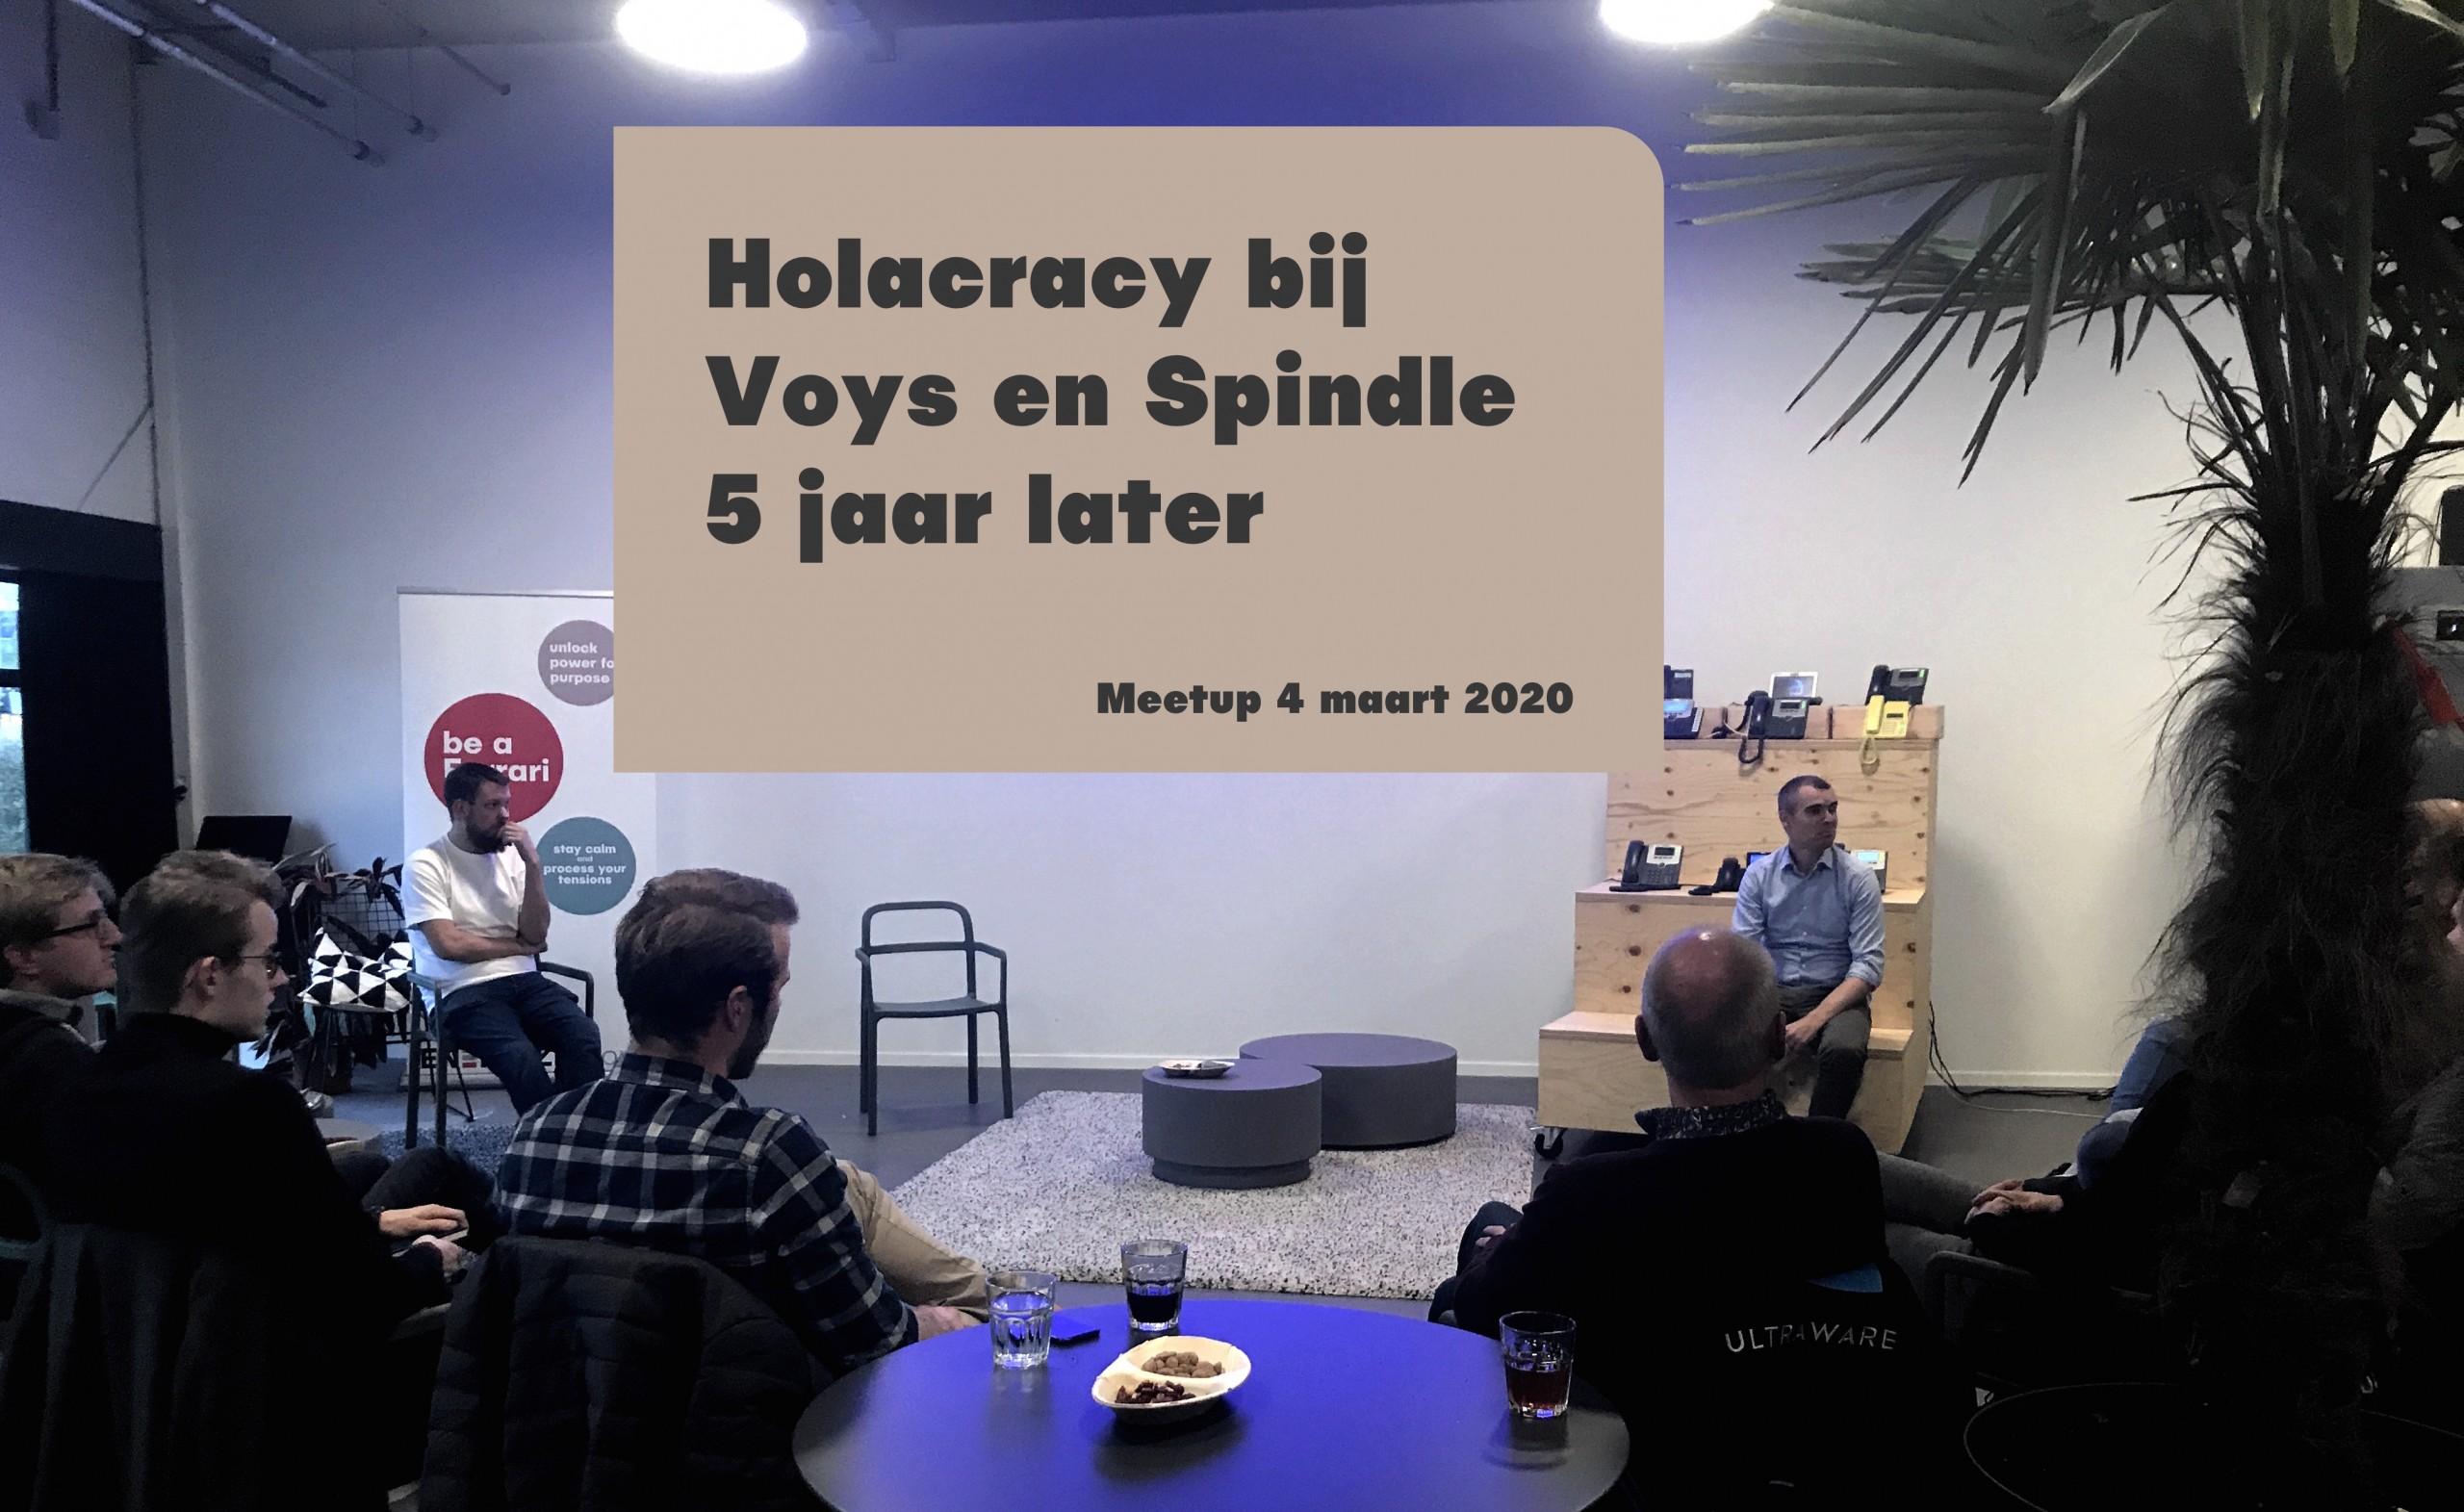 meetup spindle voys holacracy